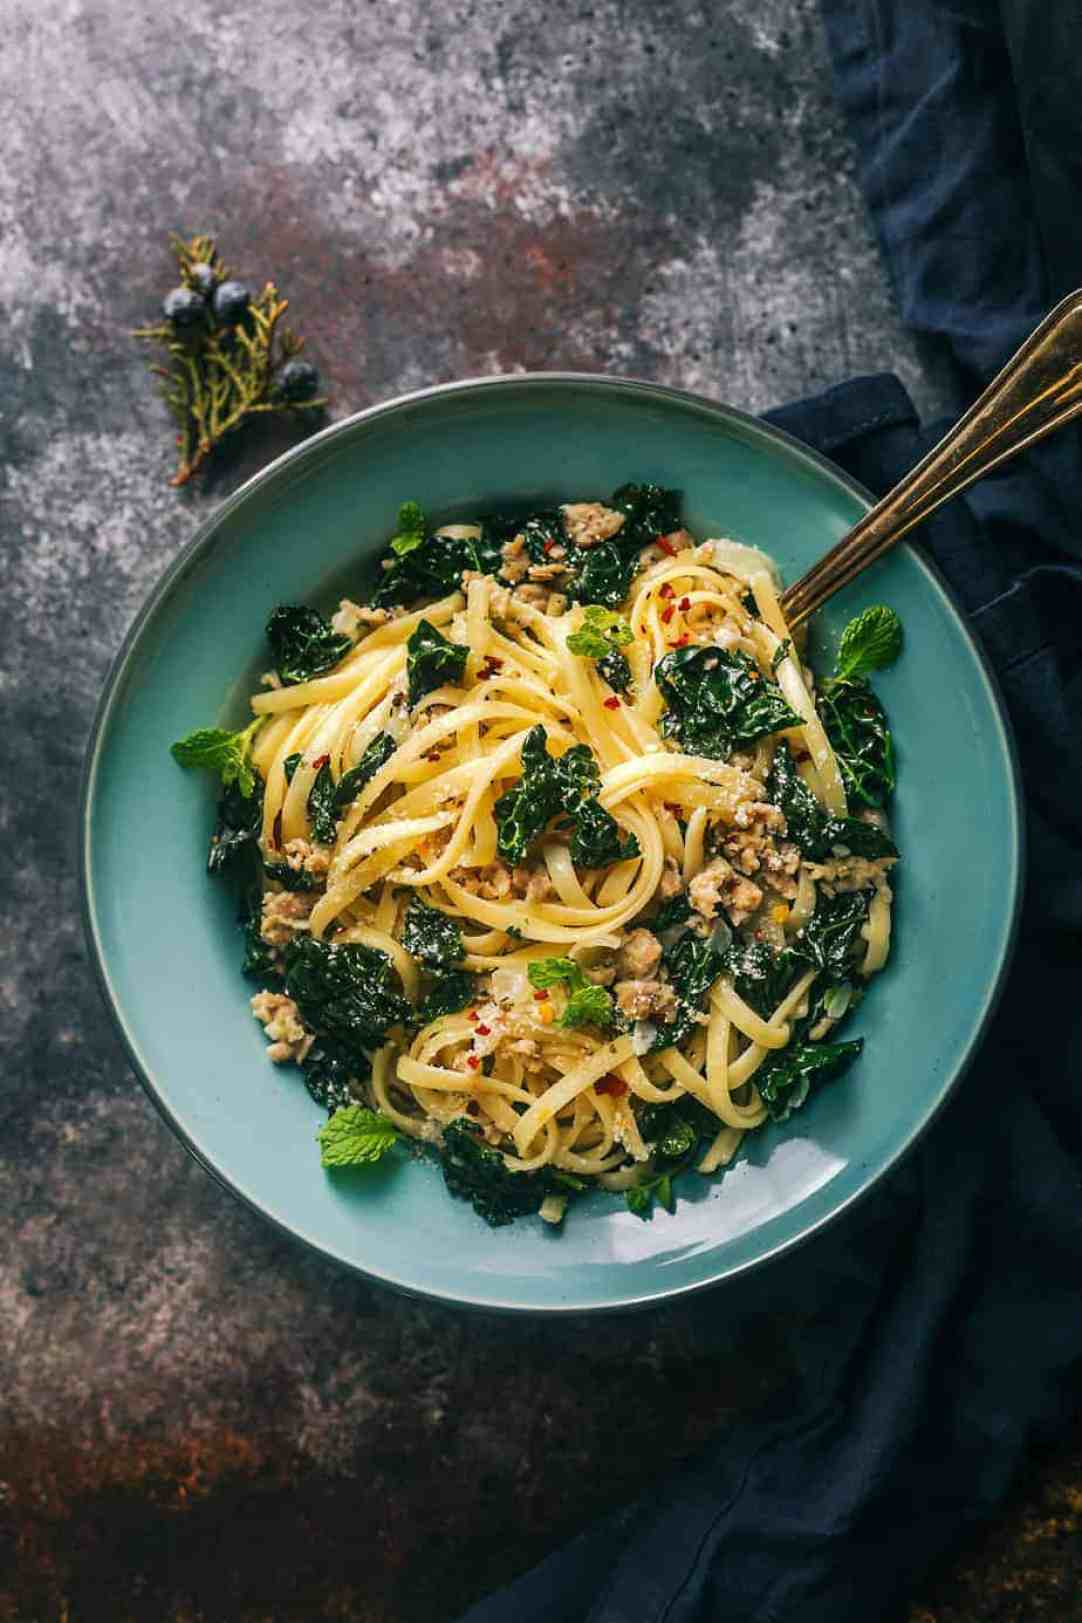 Fettuccine Alfredo with Chicken Sausage and Kale - Posh Journal